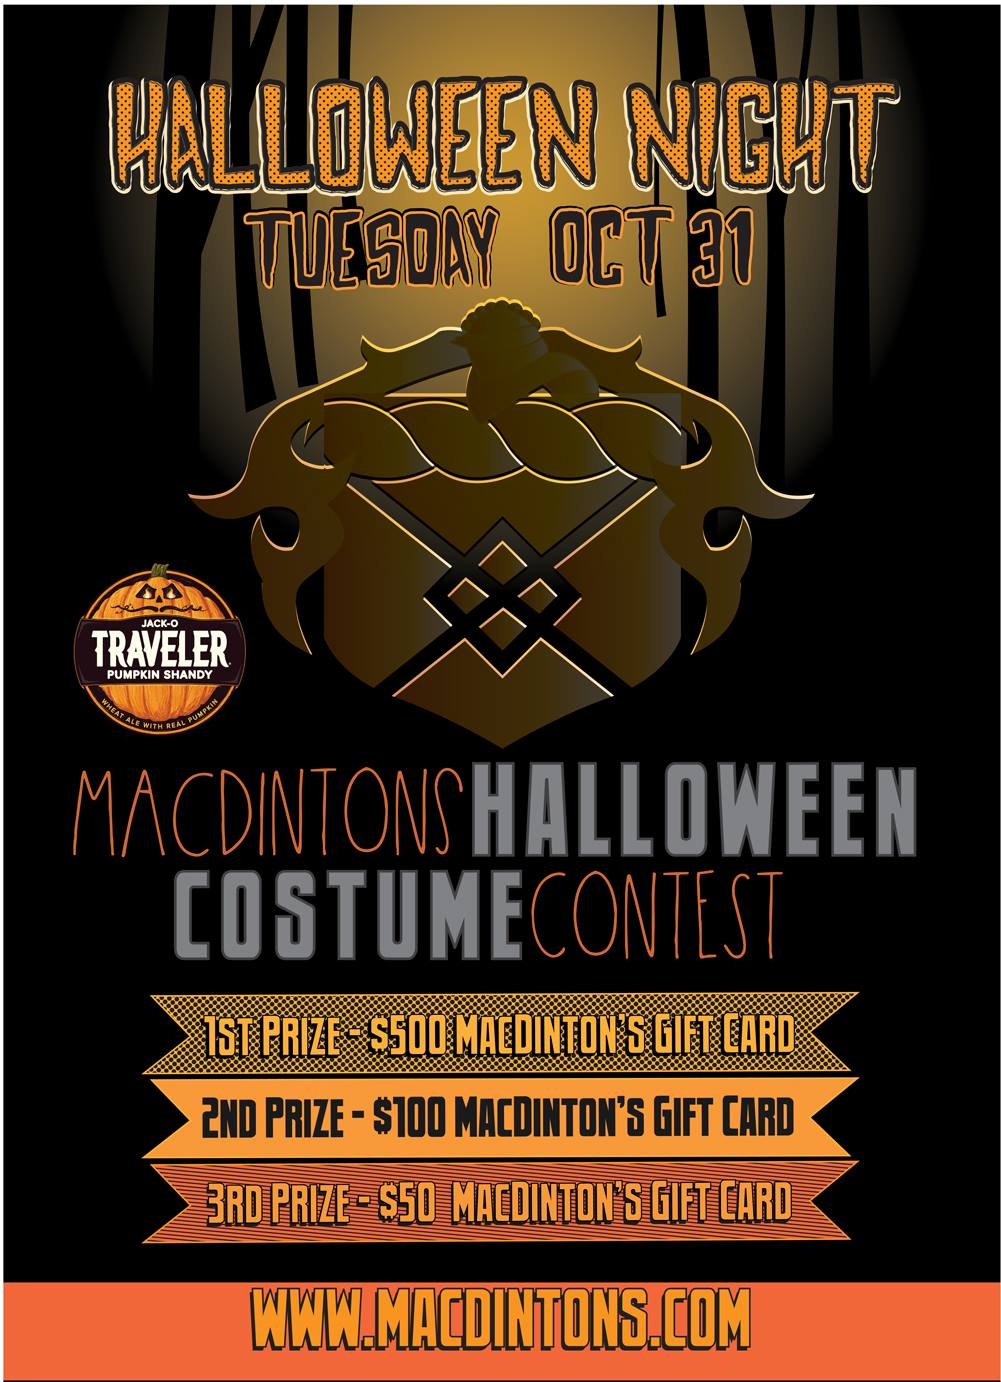 Halloween Costume Party at MacDinton's